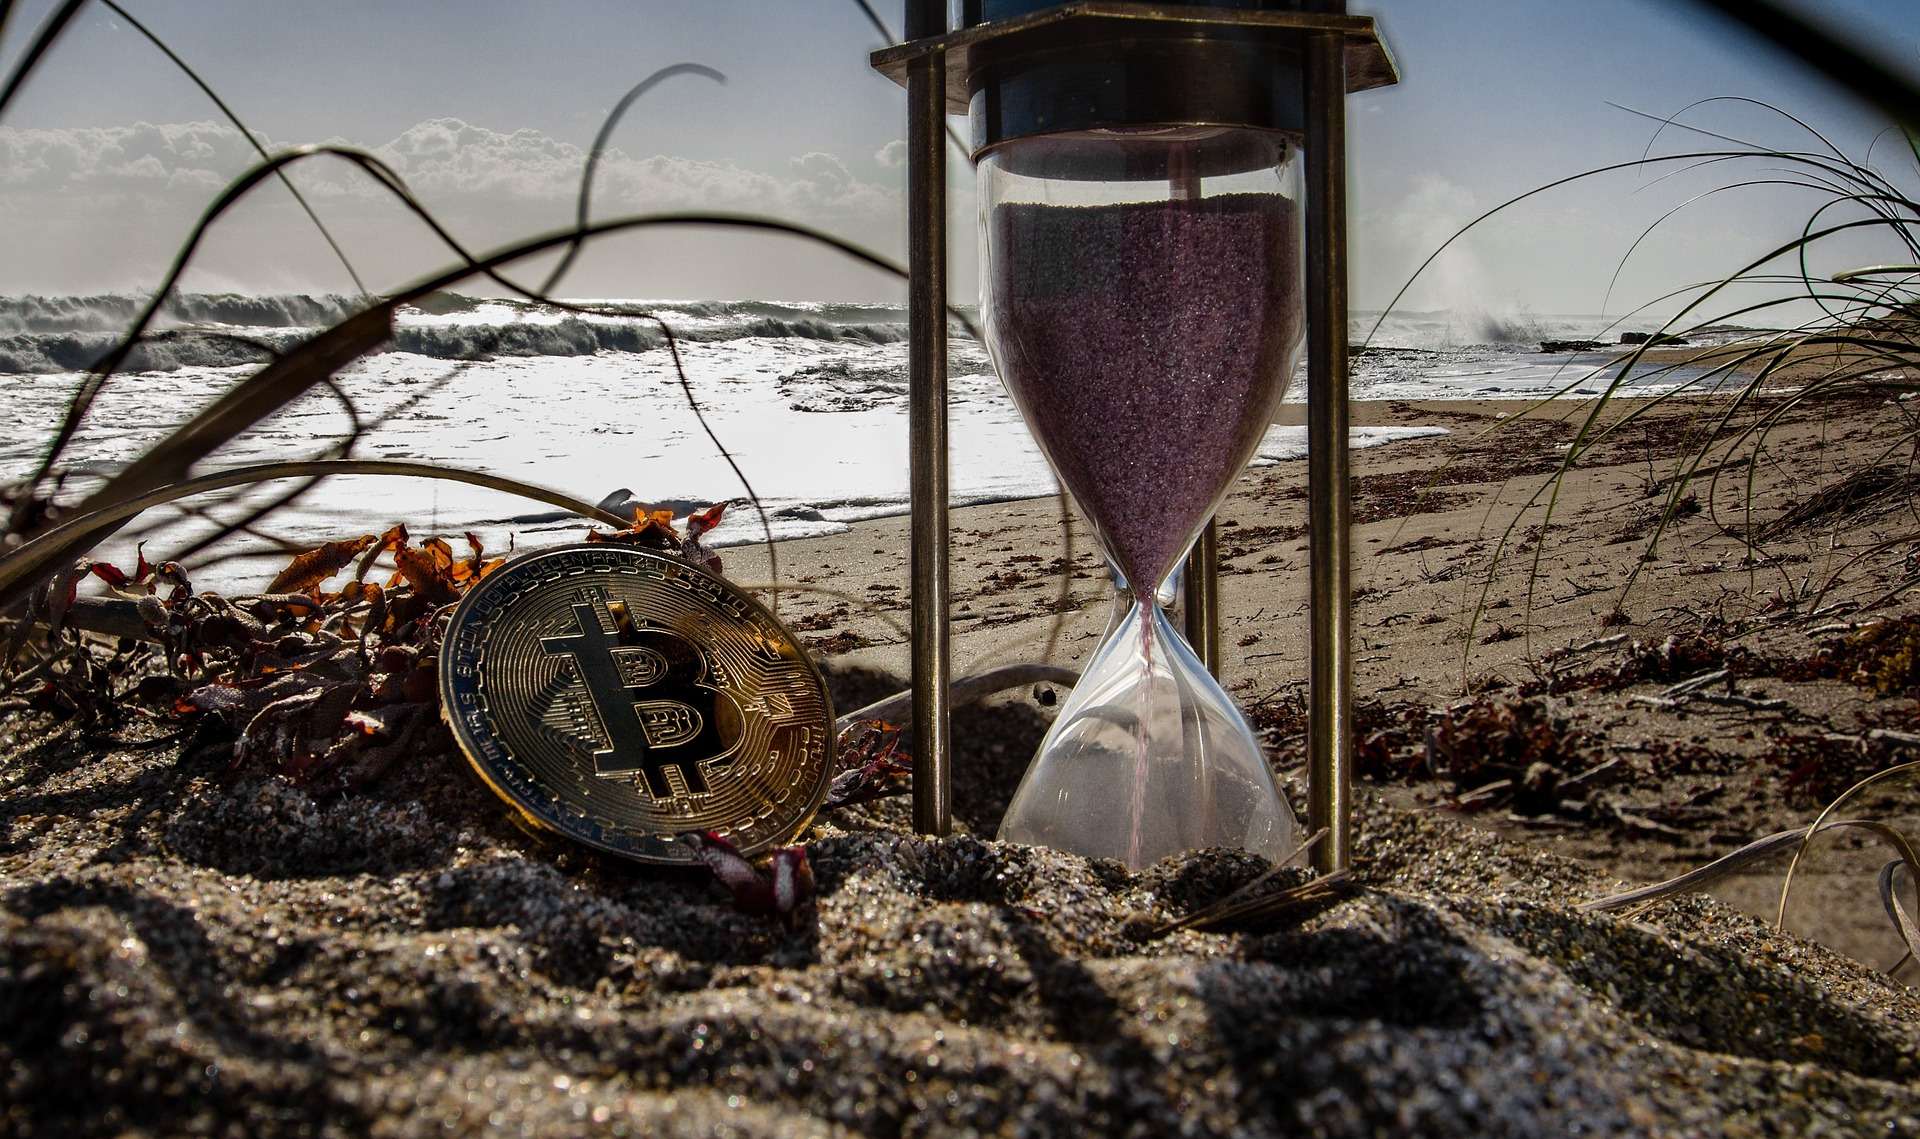 Bitcoin's Liquid sidechain could gain some much-needed spotlight in 2020